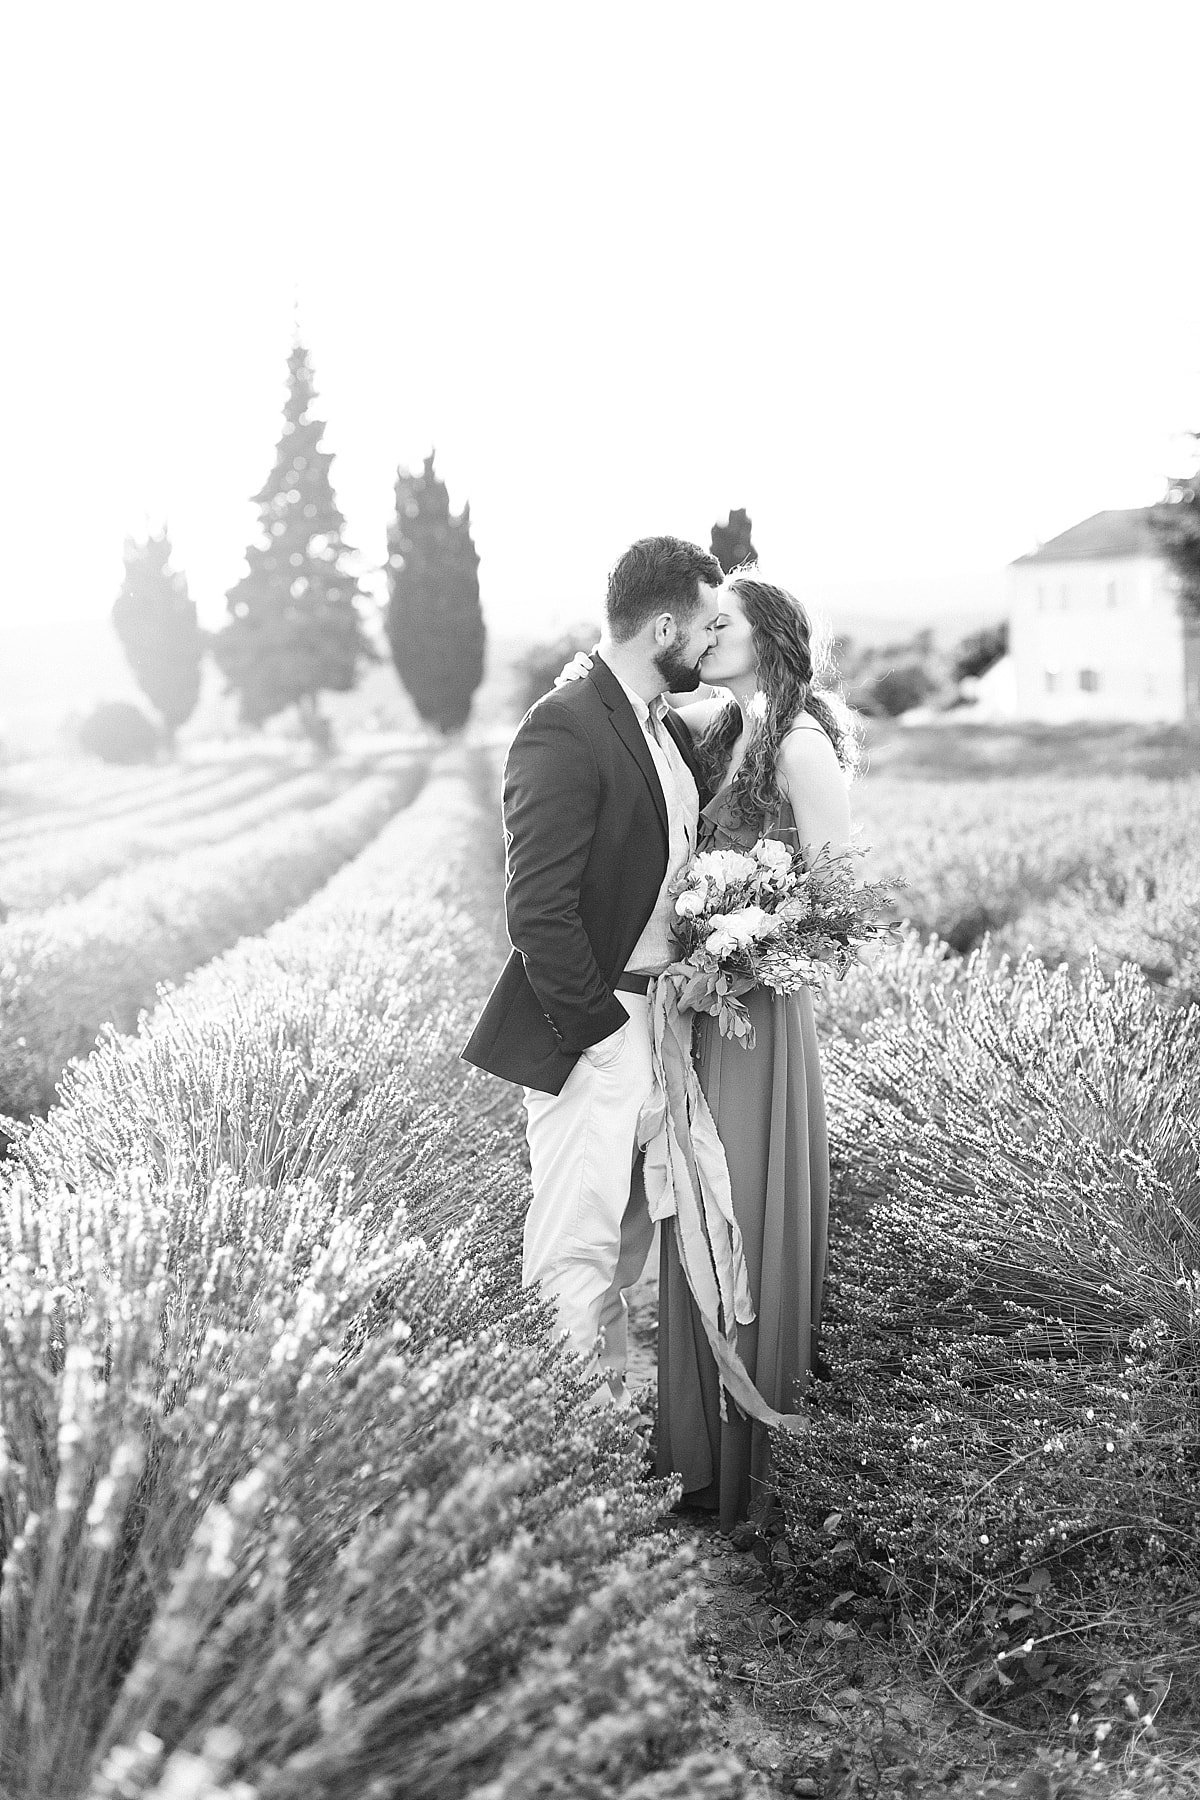 provence-france-lavender-anniversary-session-alicia-yarrish-photography-15